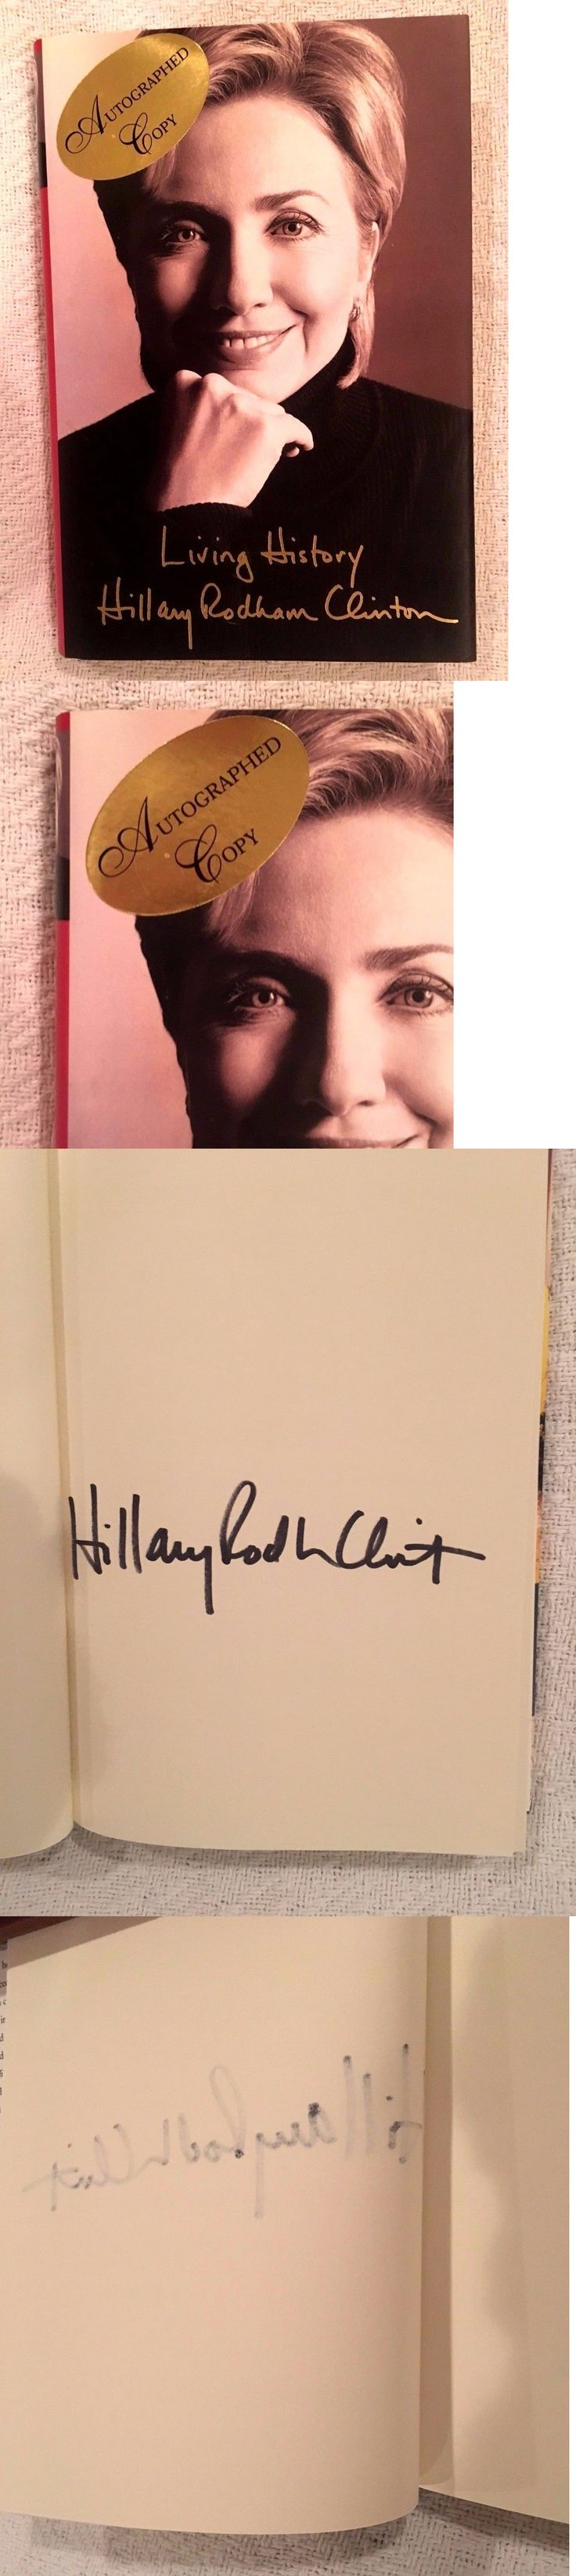 Hillary Clinton: Hillary Clinton Signed Book Living History -> BUY IT NOW ONLY: $19.99 on eBay!